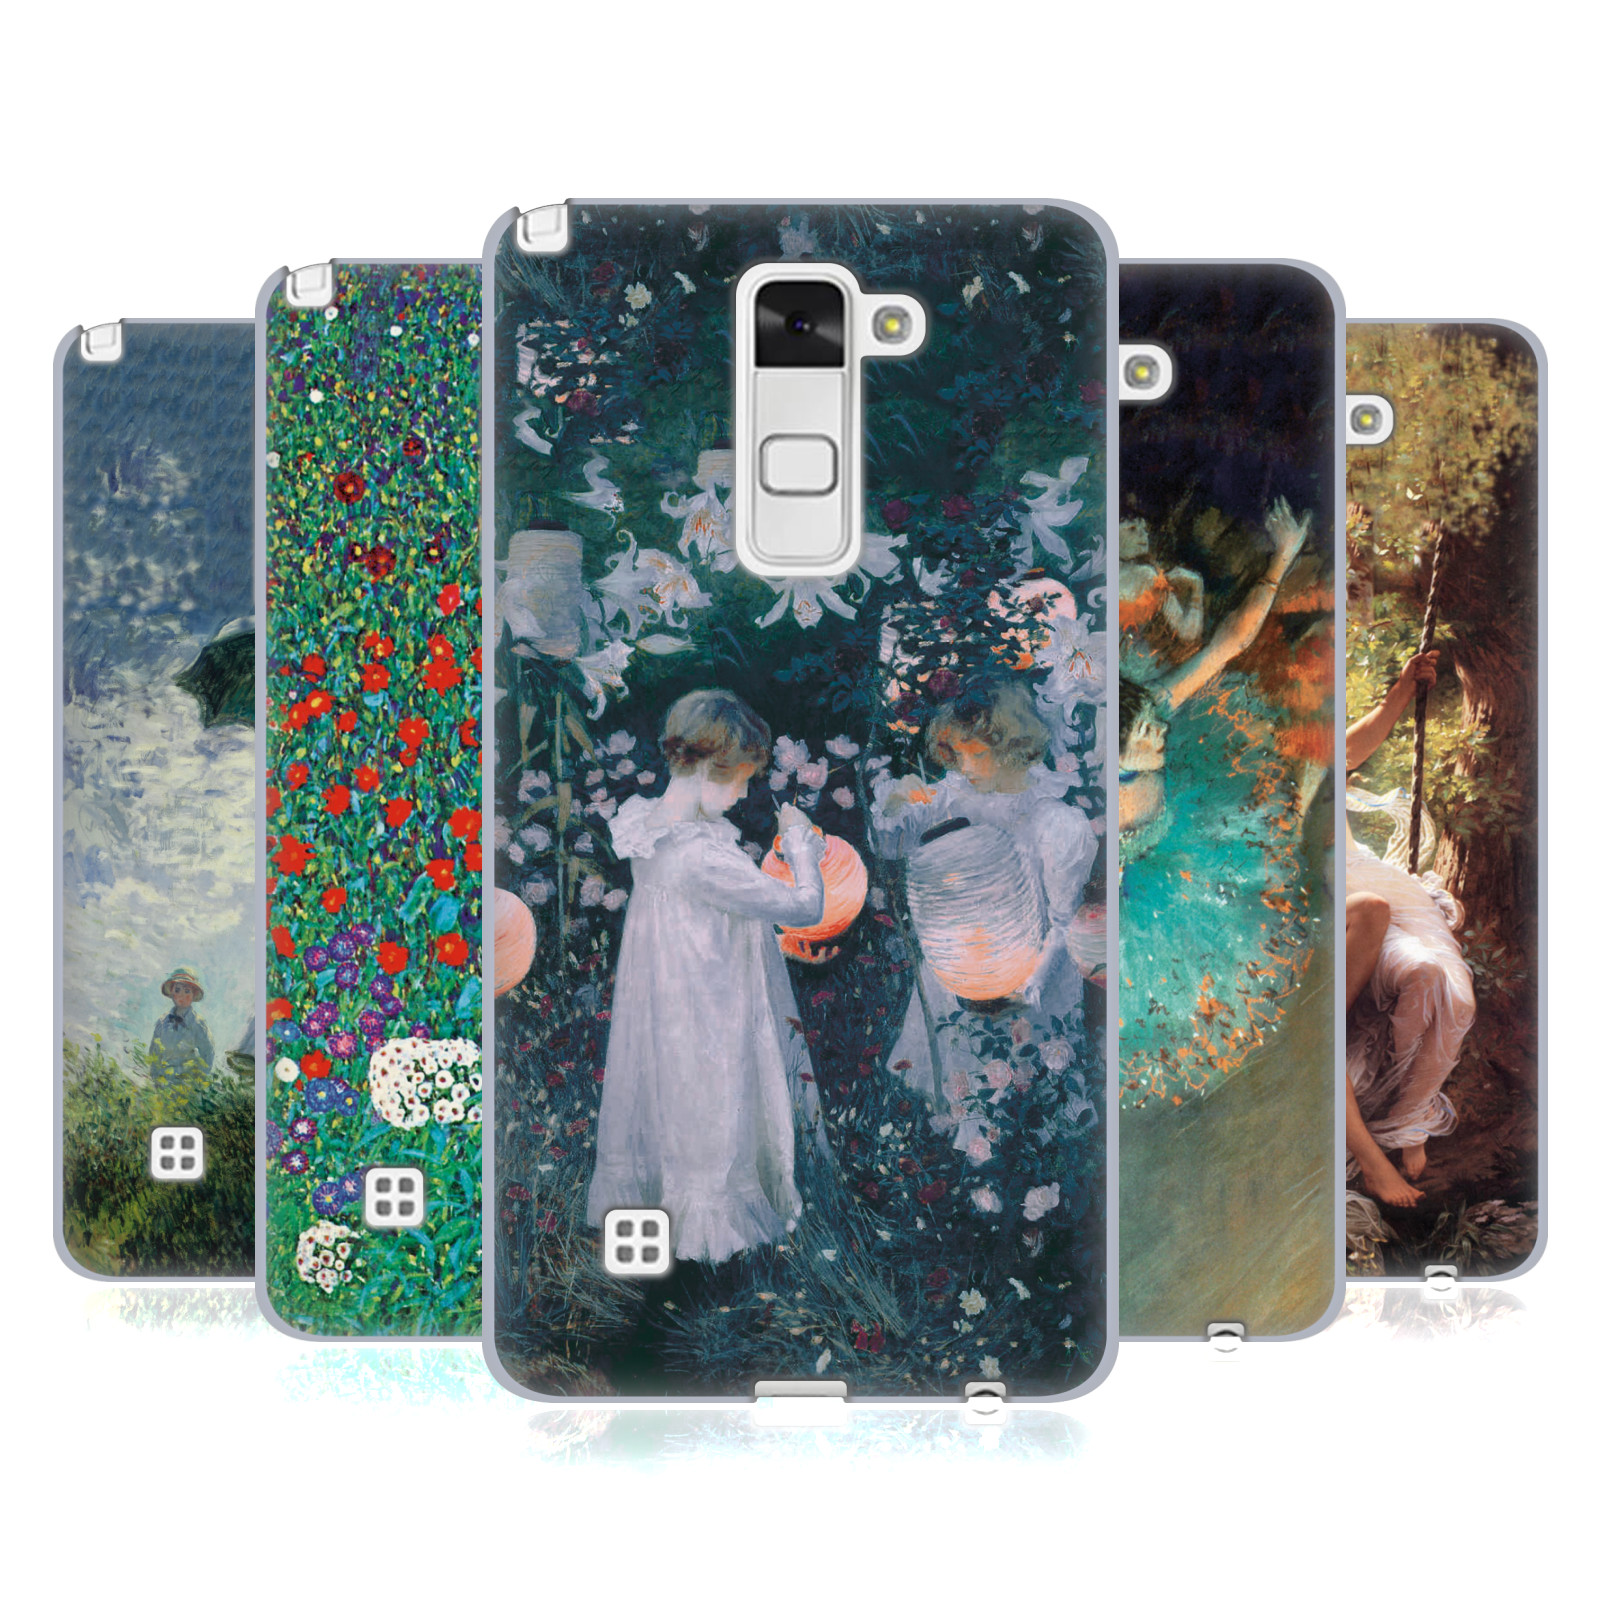 OFFICIAL-MASTERS-COLLECTION-PAINTINGS-2-SOFT-GEL-CASE-FOR-LG-PHONES-3